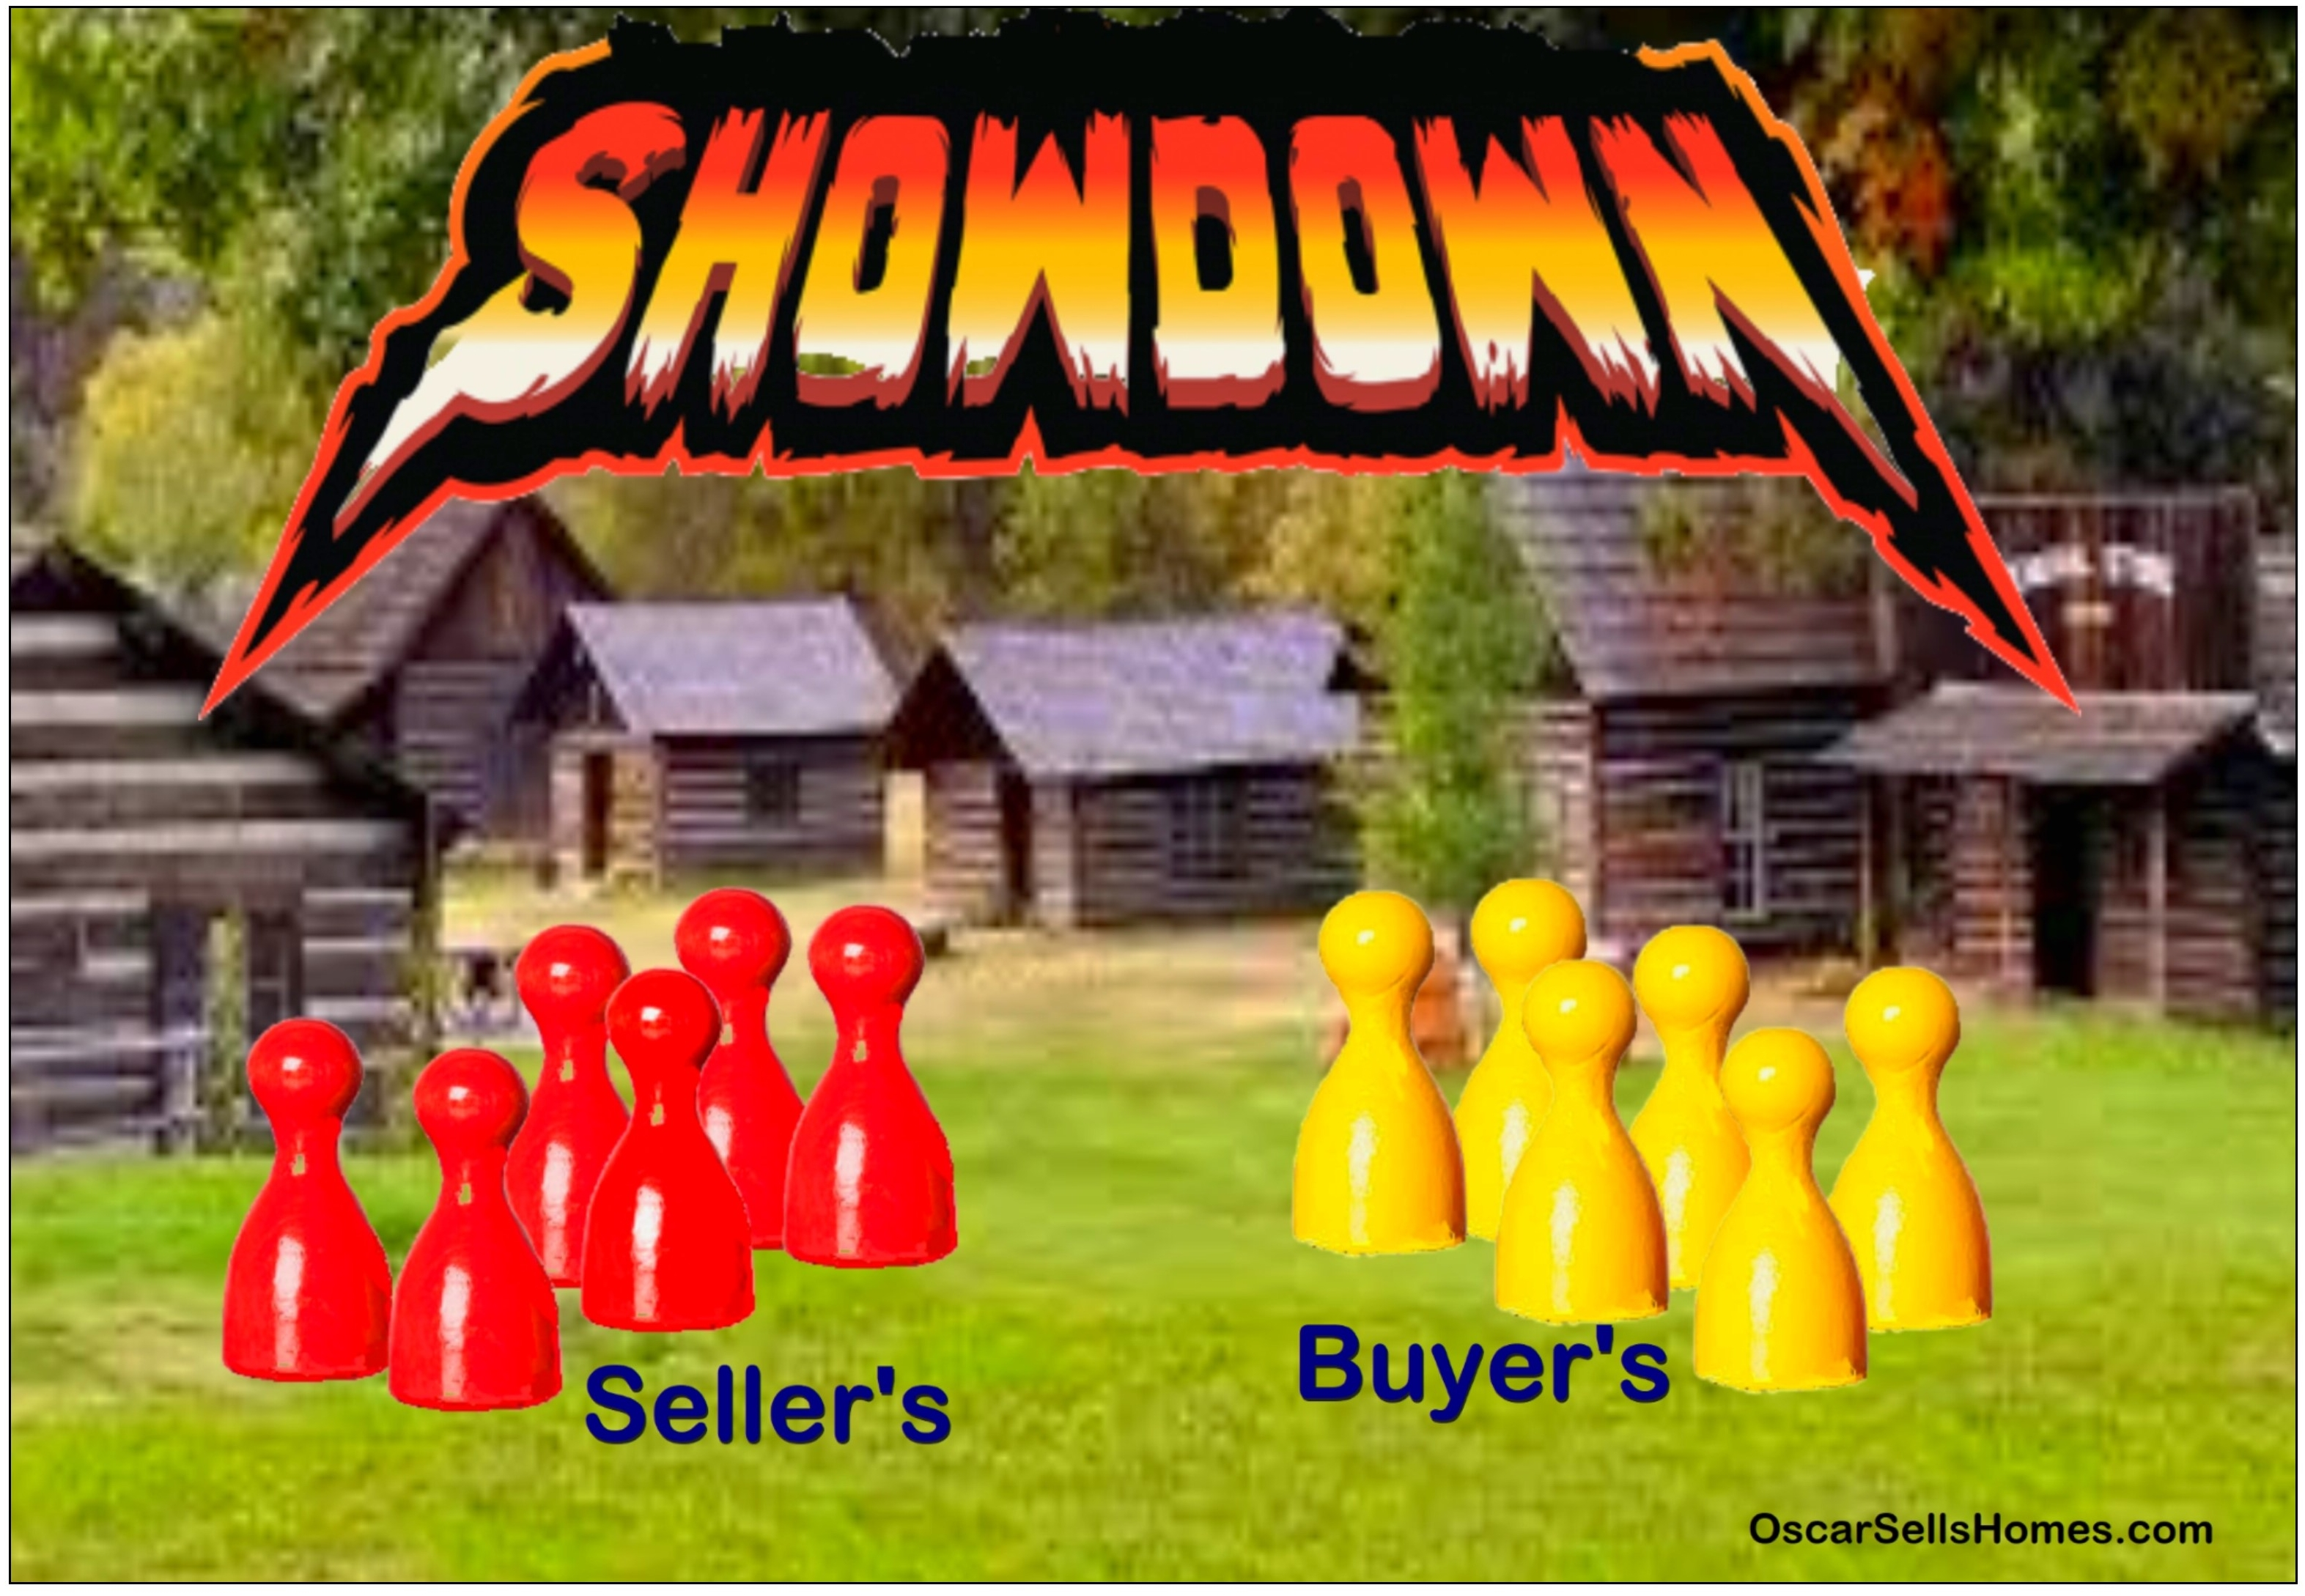 Home Pricing Showdown